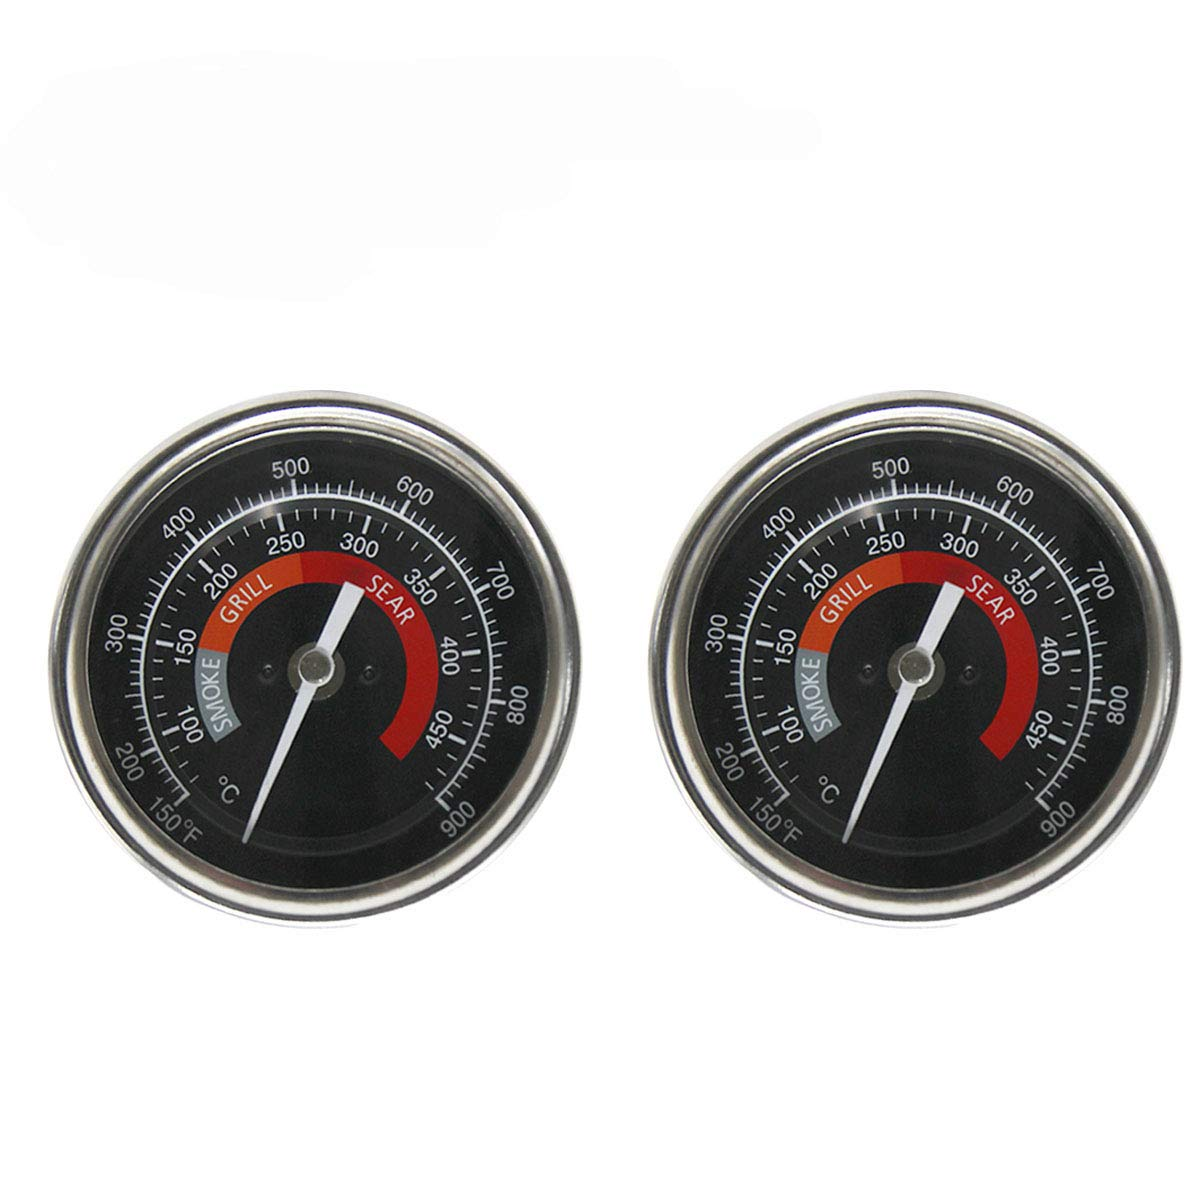 BBQ Grill Temperature Gauge Waterproof Large Face for Kamado Joe Barbecue Charcoal Grill Stainless Steel 150-900 F Cooking Thermometer for Oven Wood Stove Accessories Tool Set Up Easy Black-2 Pack